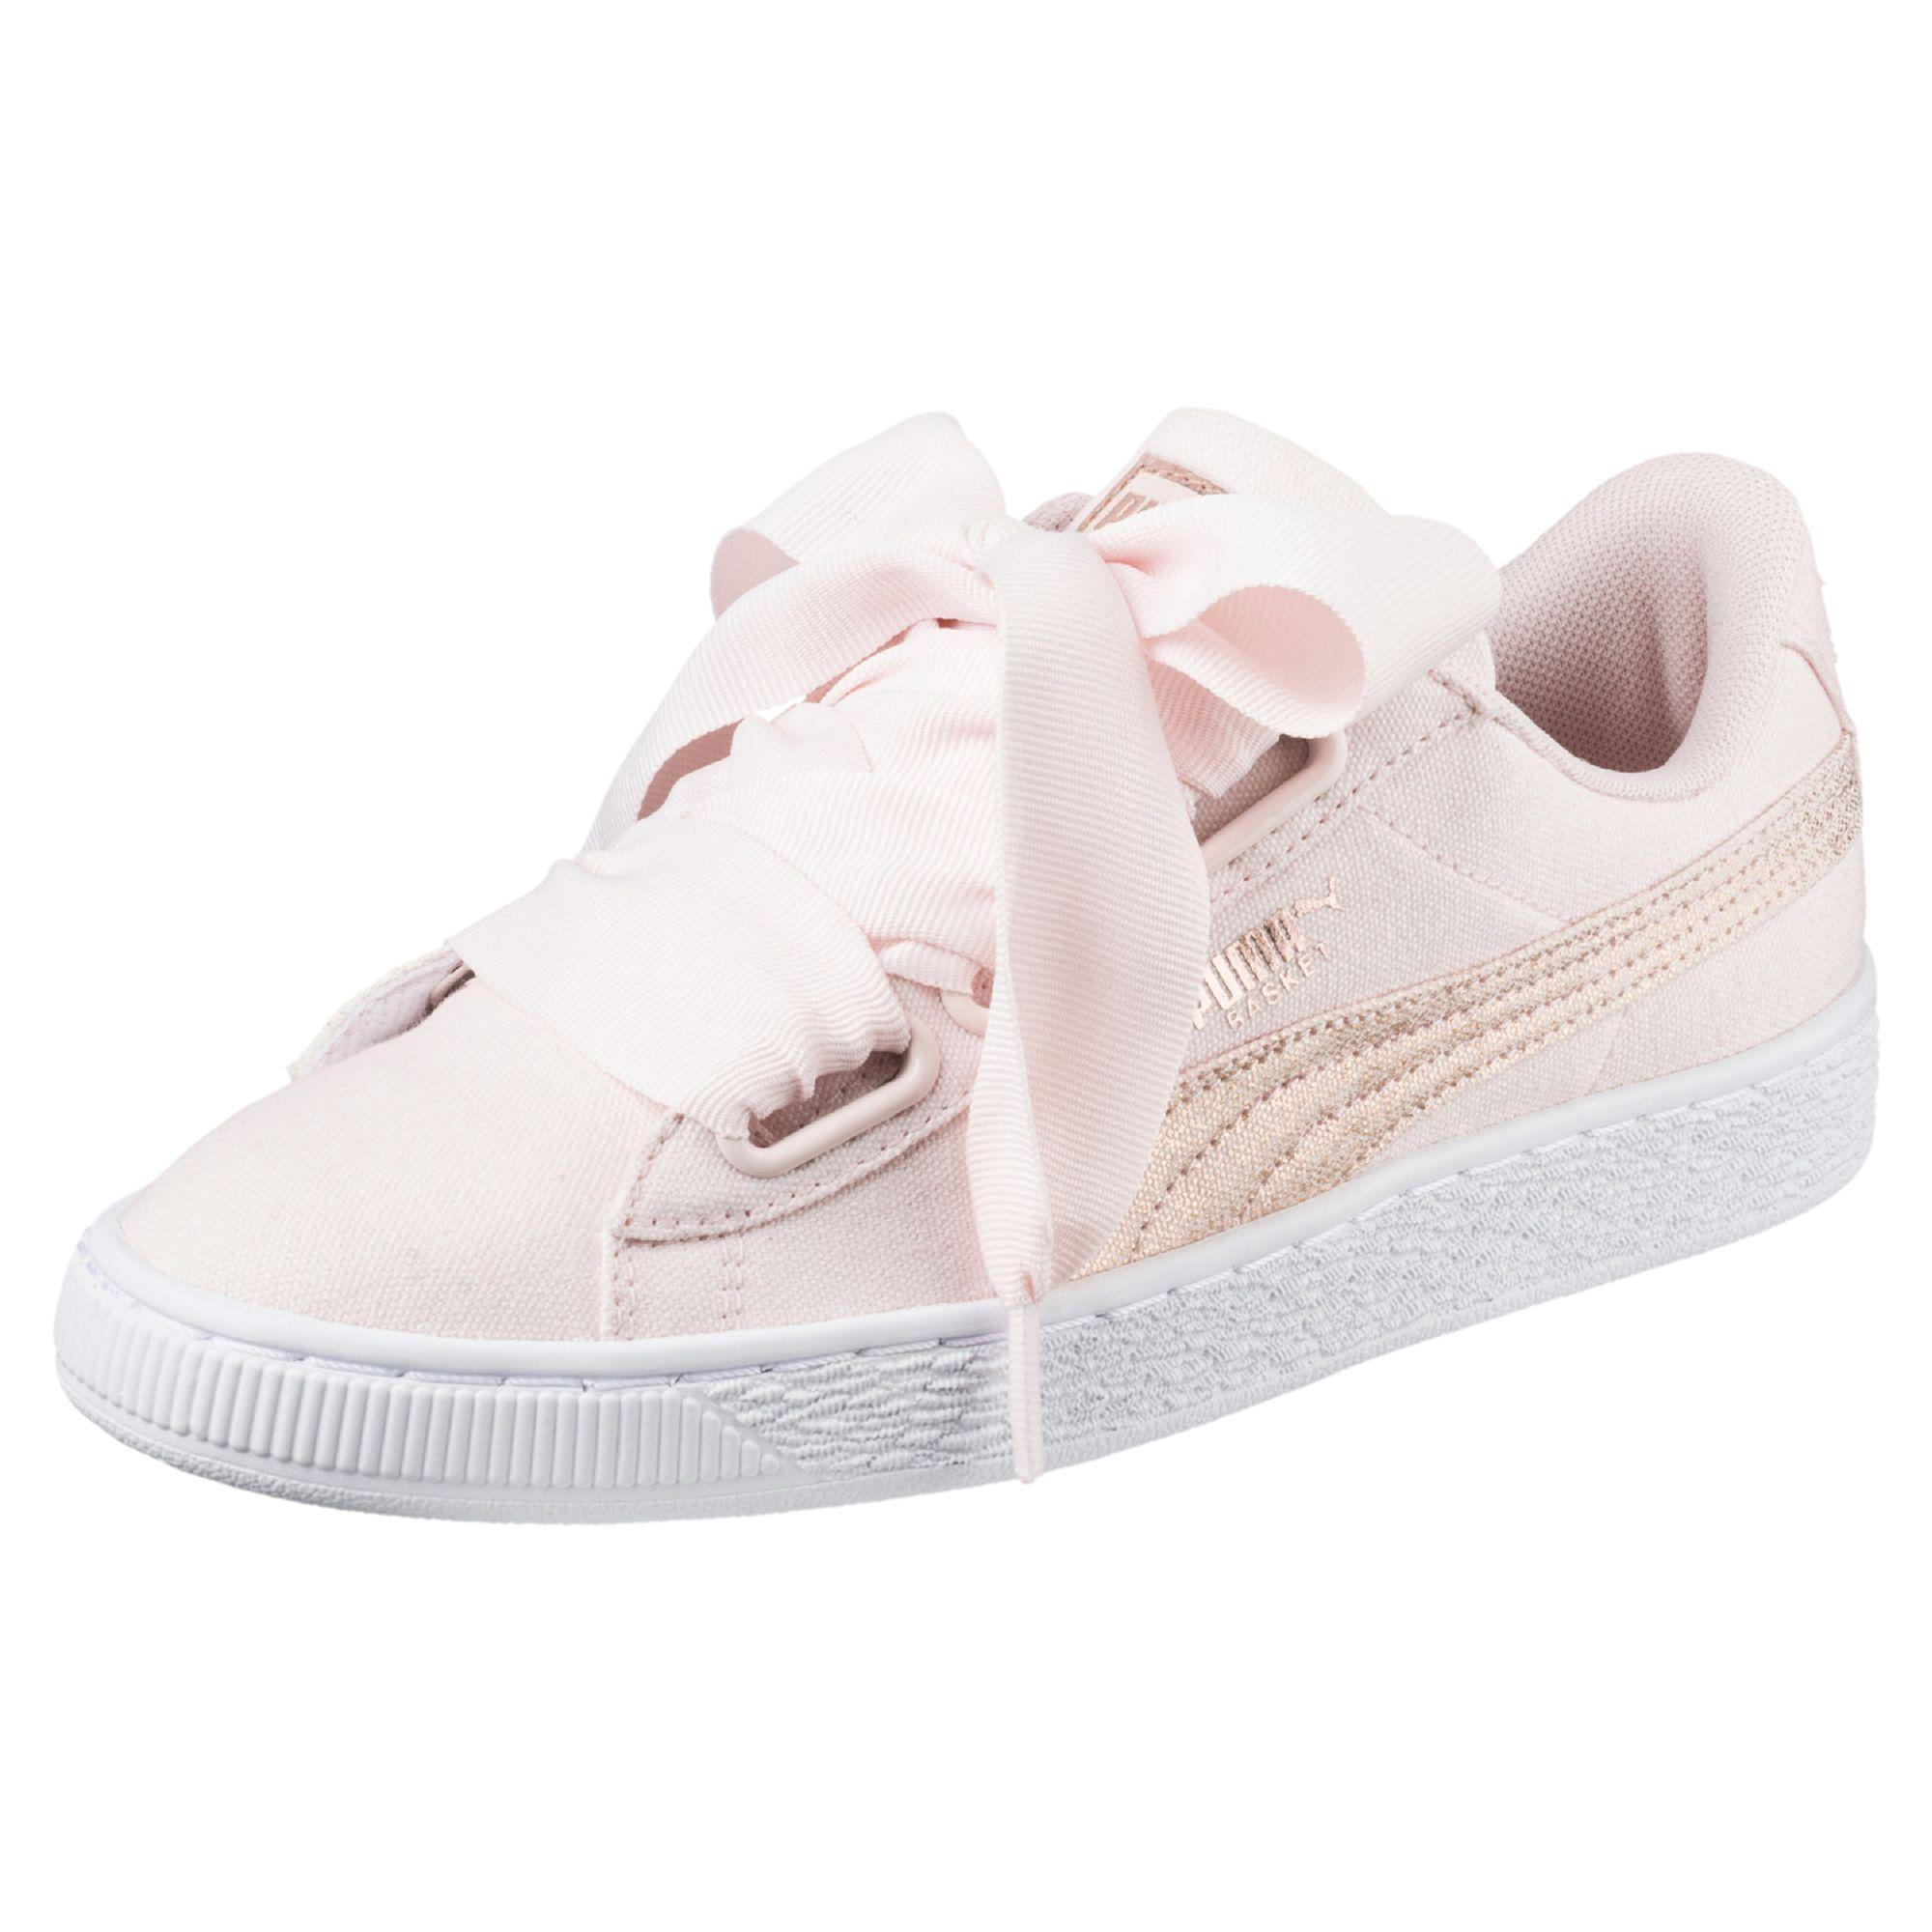 Heart Woman White Gold Shoes Pearl Puma Canvas Rose Basket SVUMpz